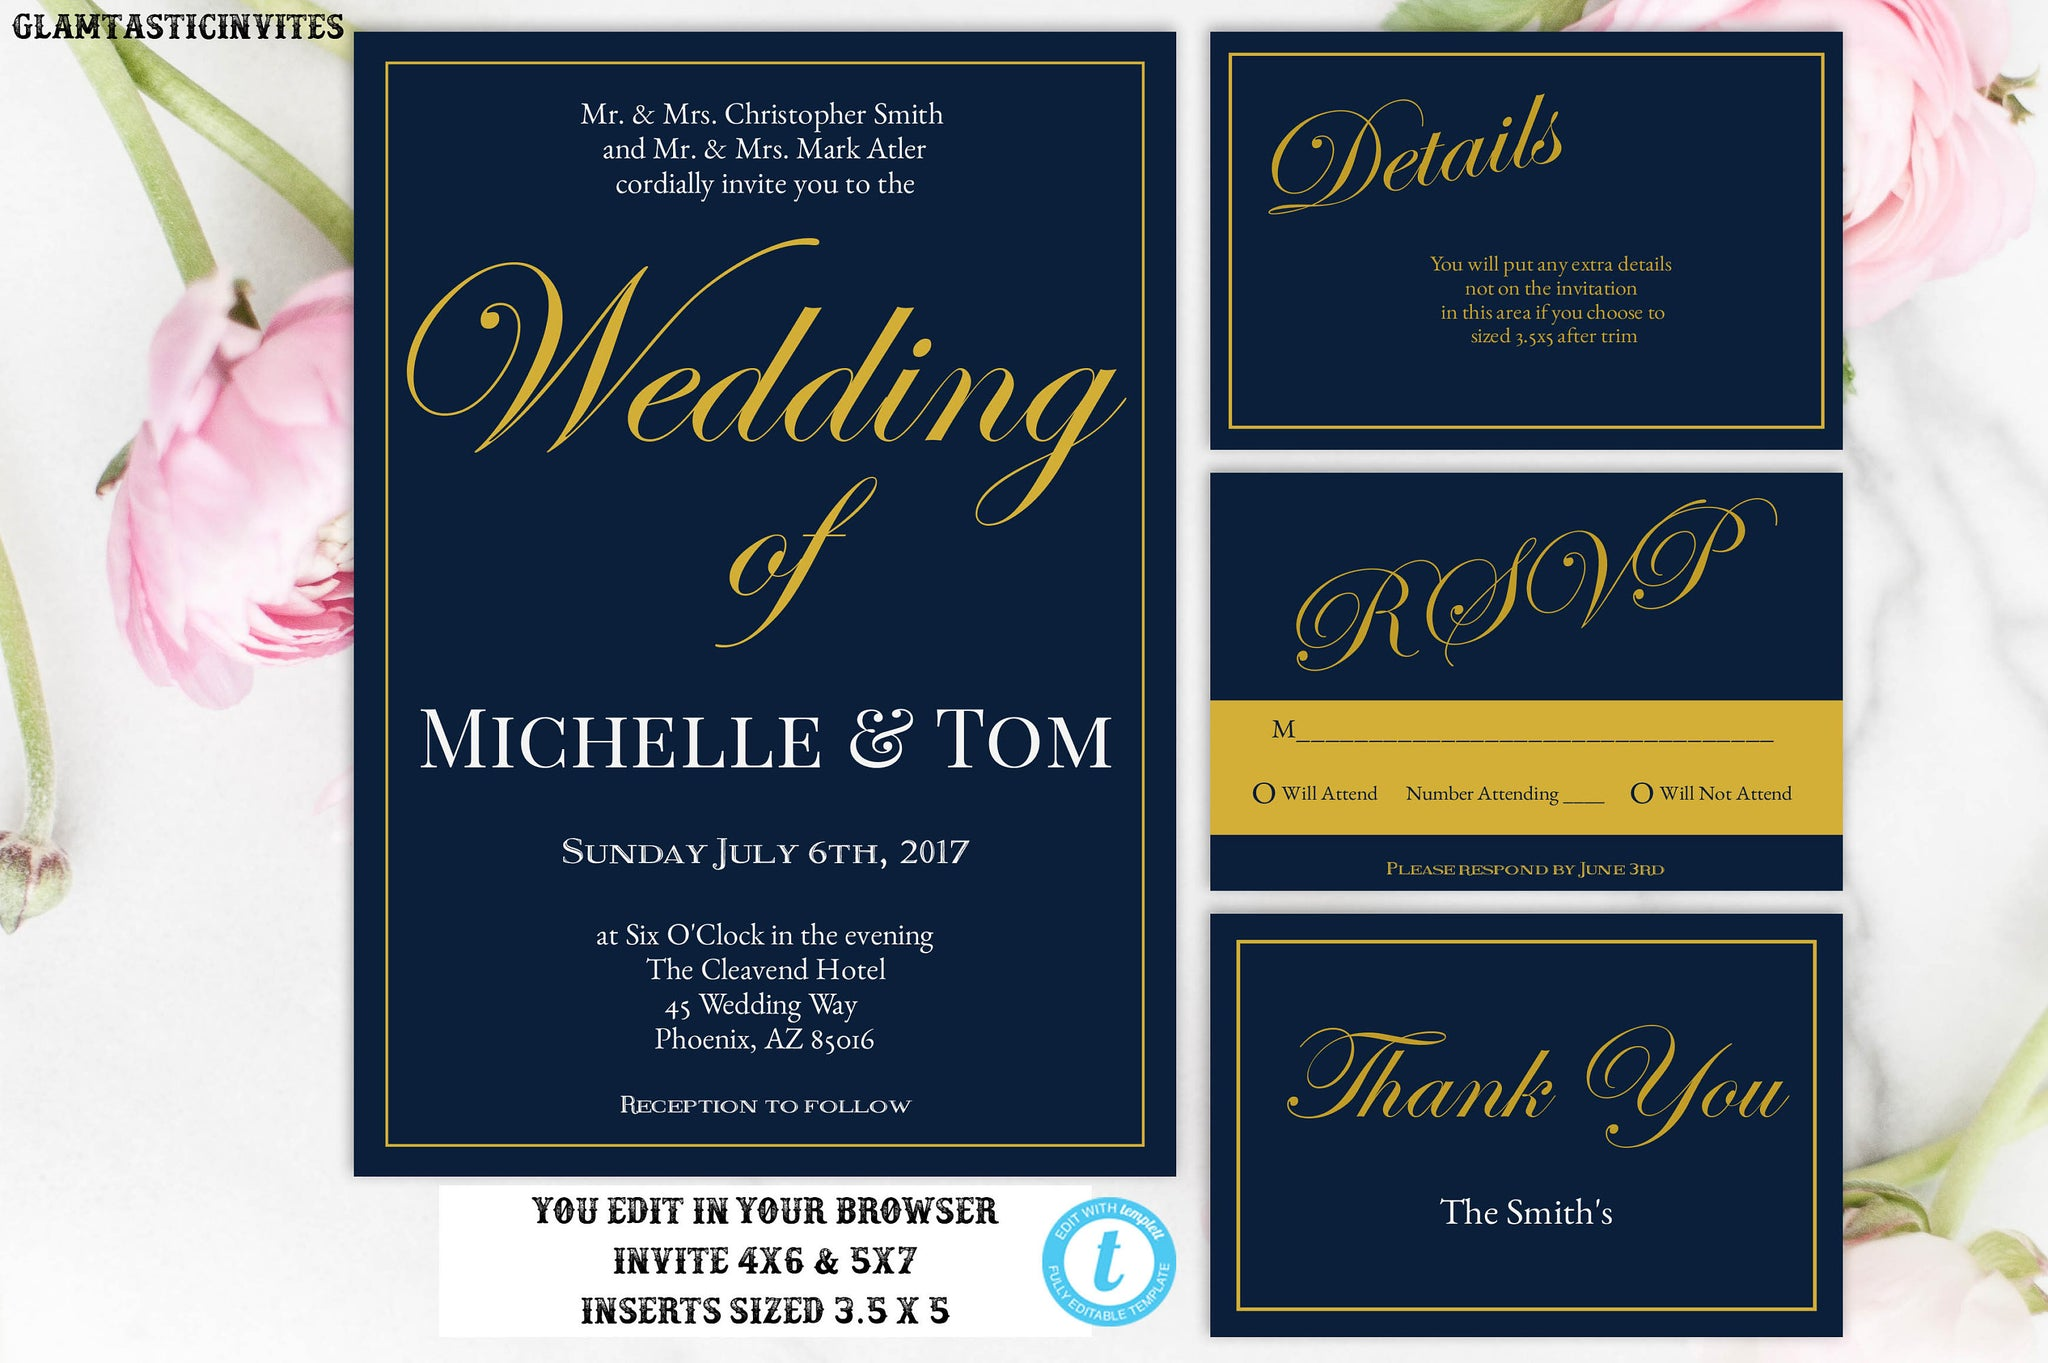 Wedding Invitation, Navy Blue Wedding Invitation, Gold Wedding Invitation, INSTANT DOWNLOAD, Wedding Invitation Set, Navy Blue, Gold, Invite